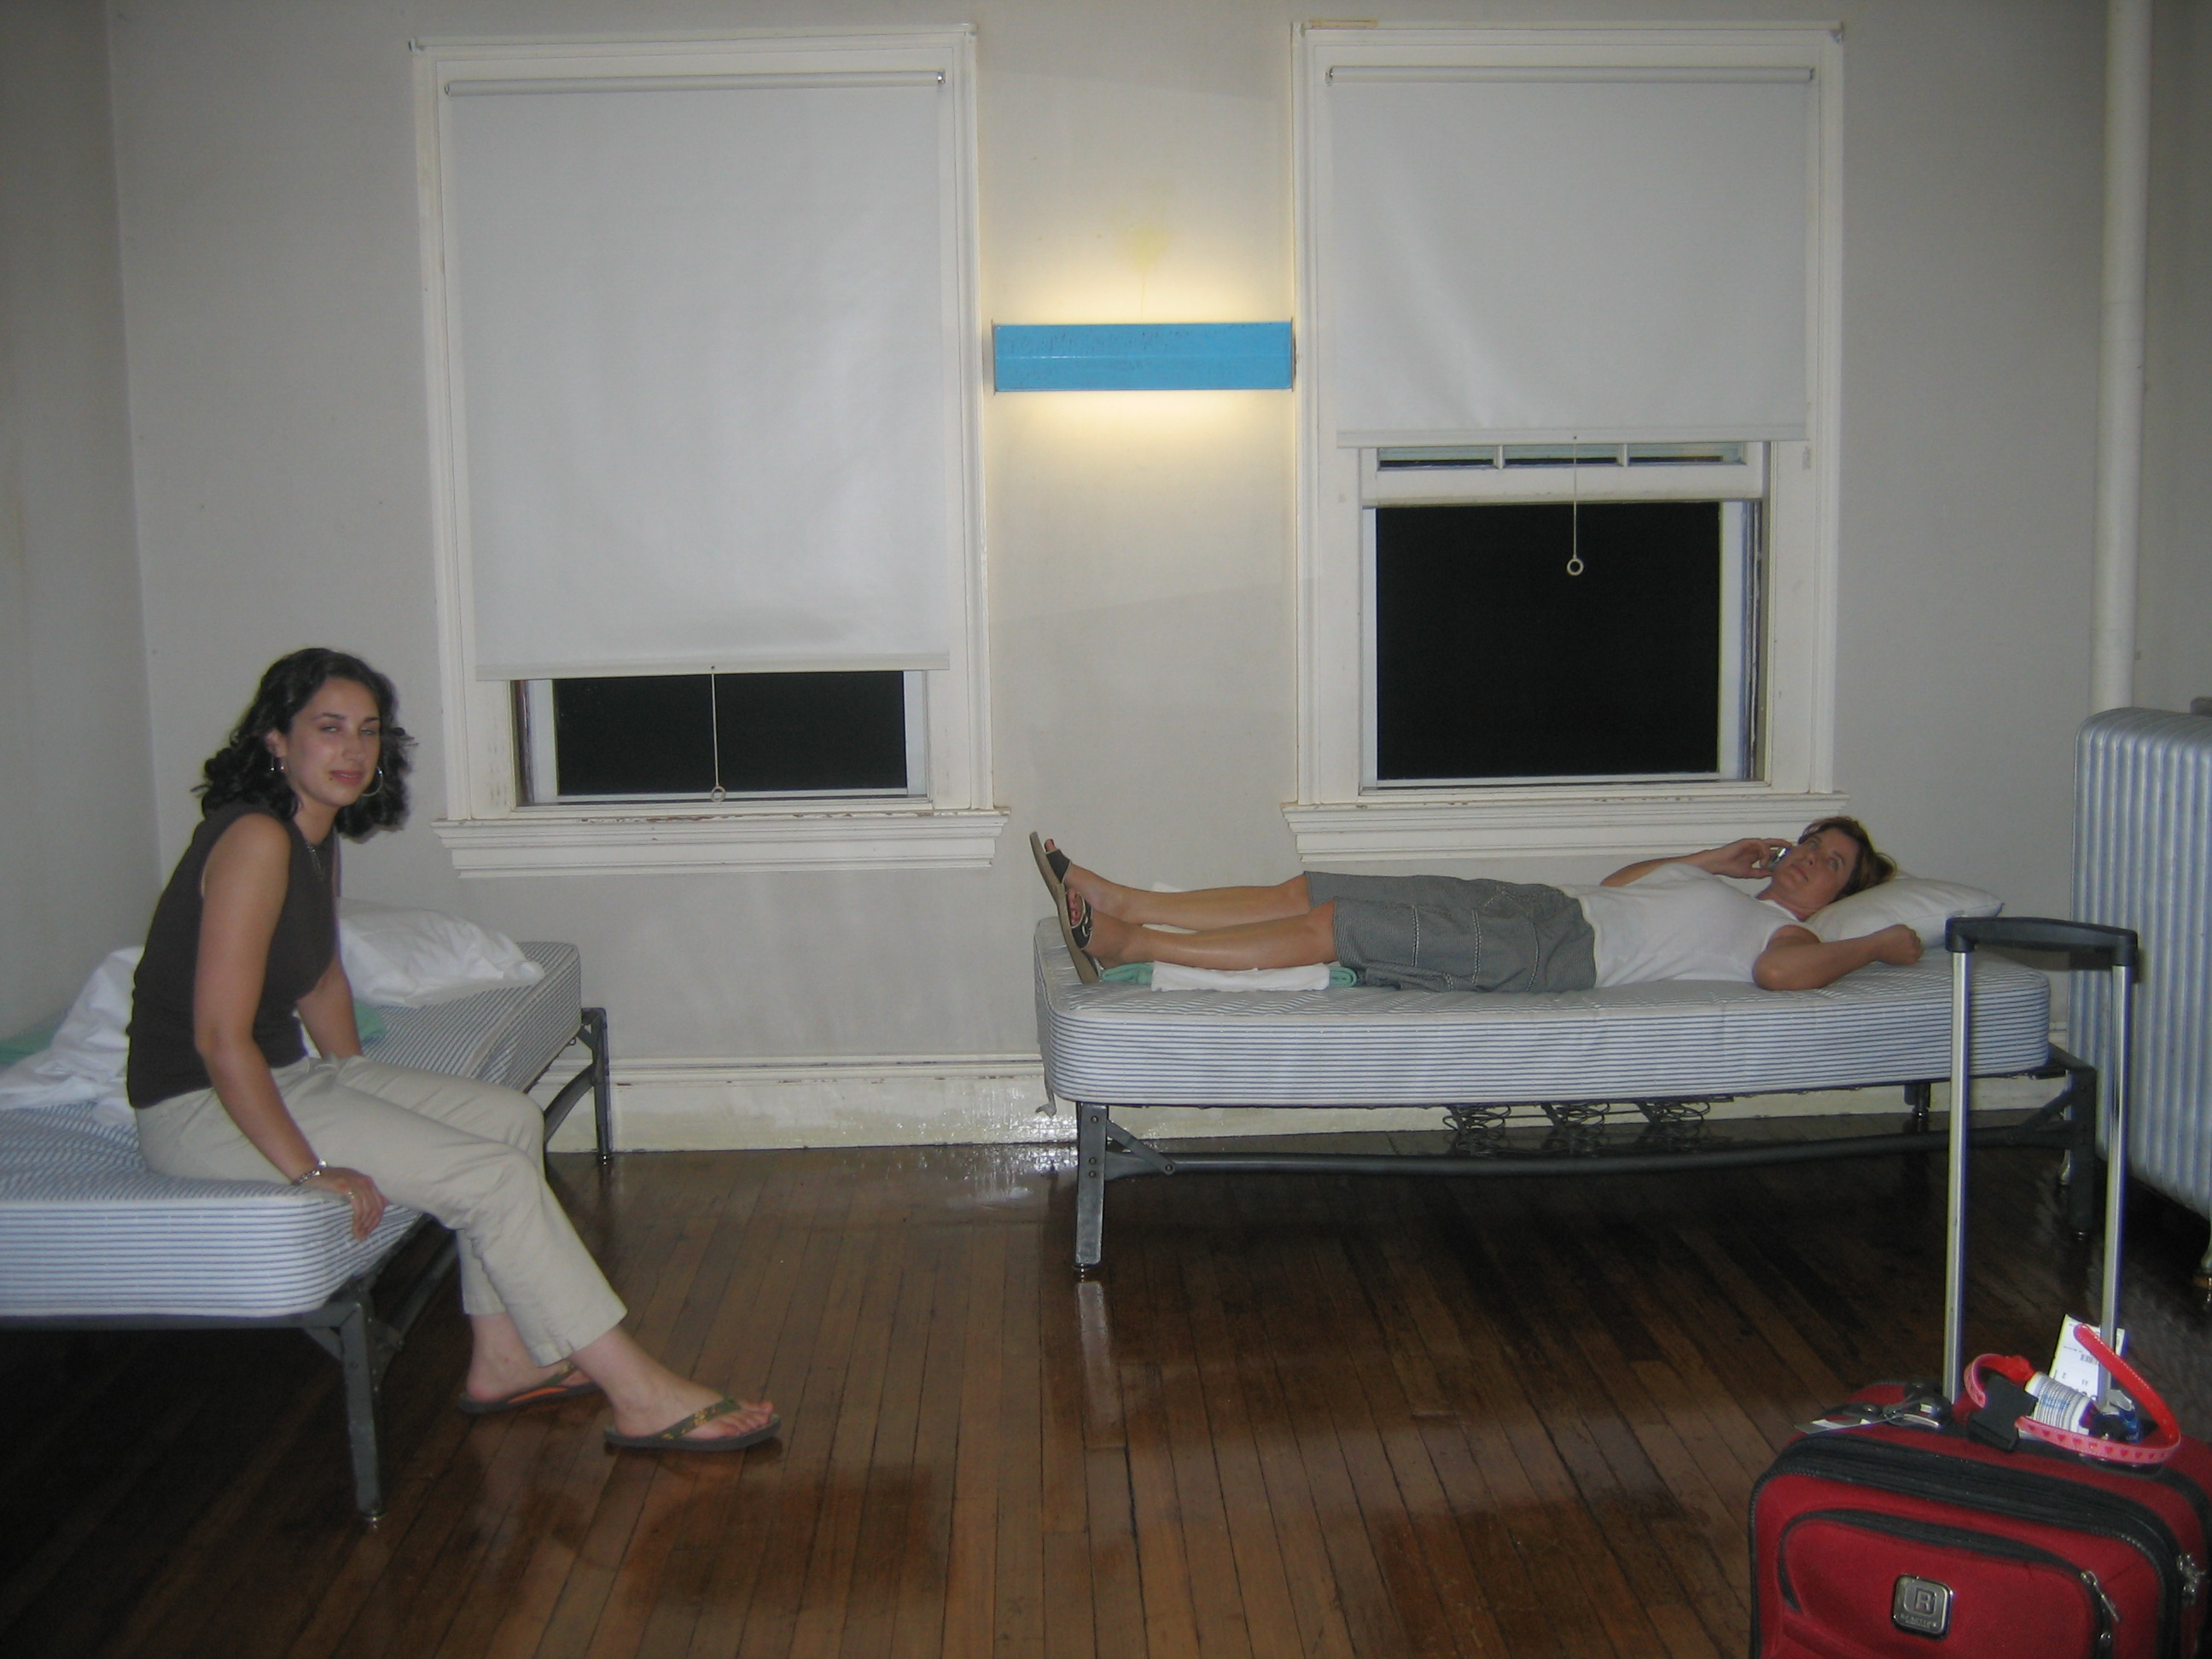 Smith College Dorm Room | Flickr - Photo Sharing!